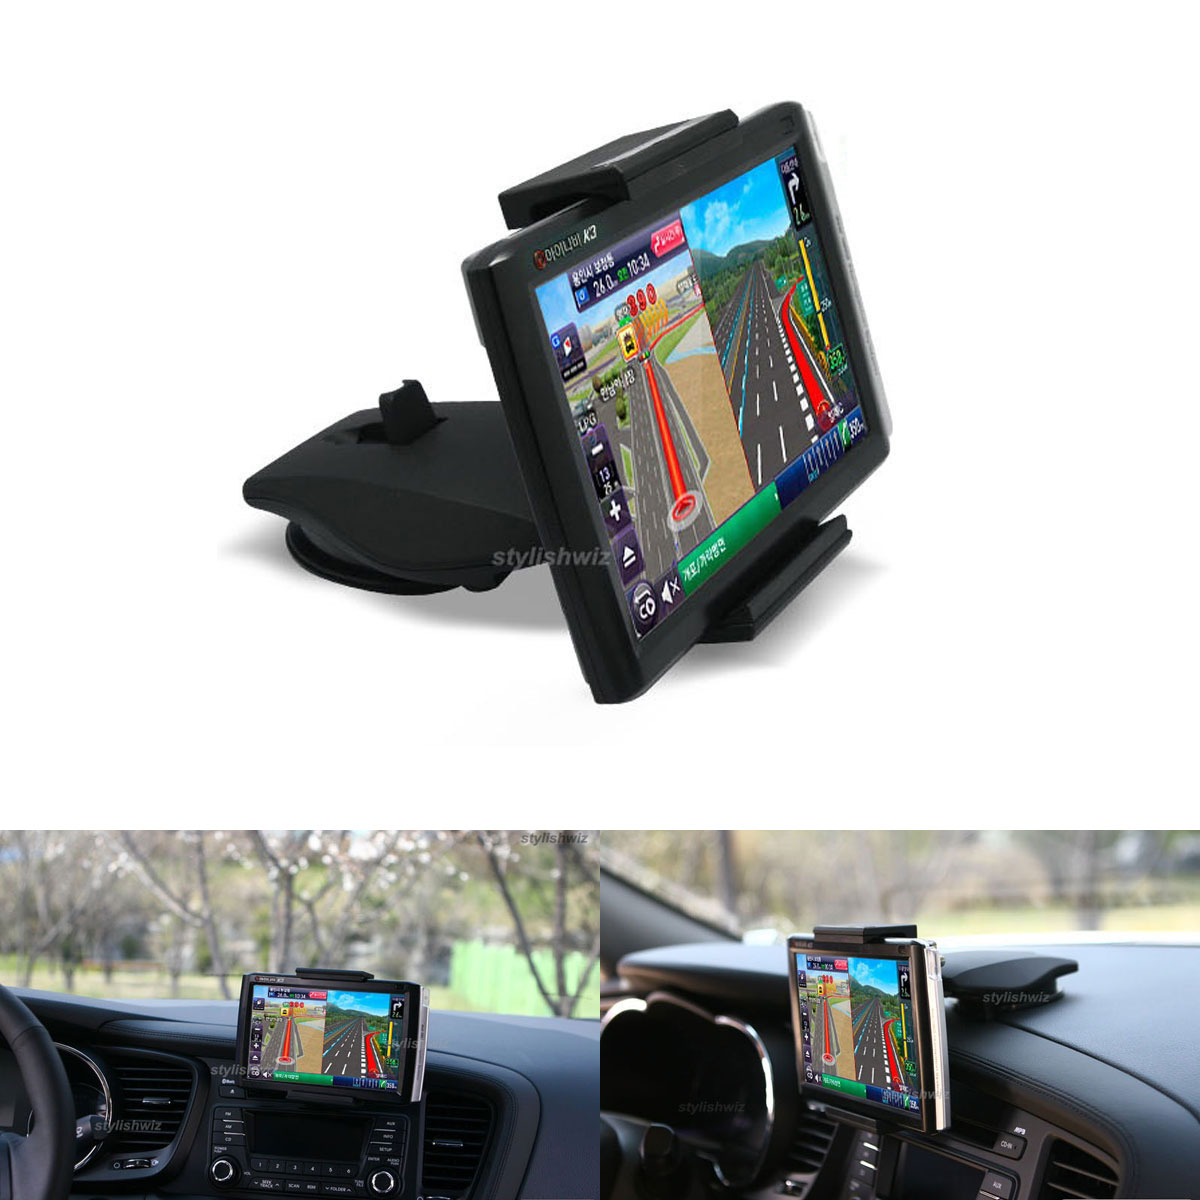 Xenomix 7 Nevigation Smartphone Kendaraan Mounts Cradle Car Mount Galaxy Series